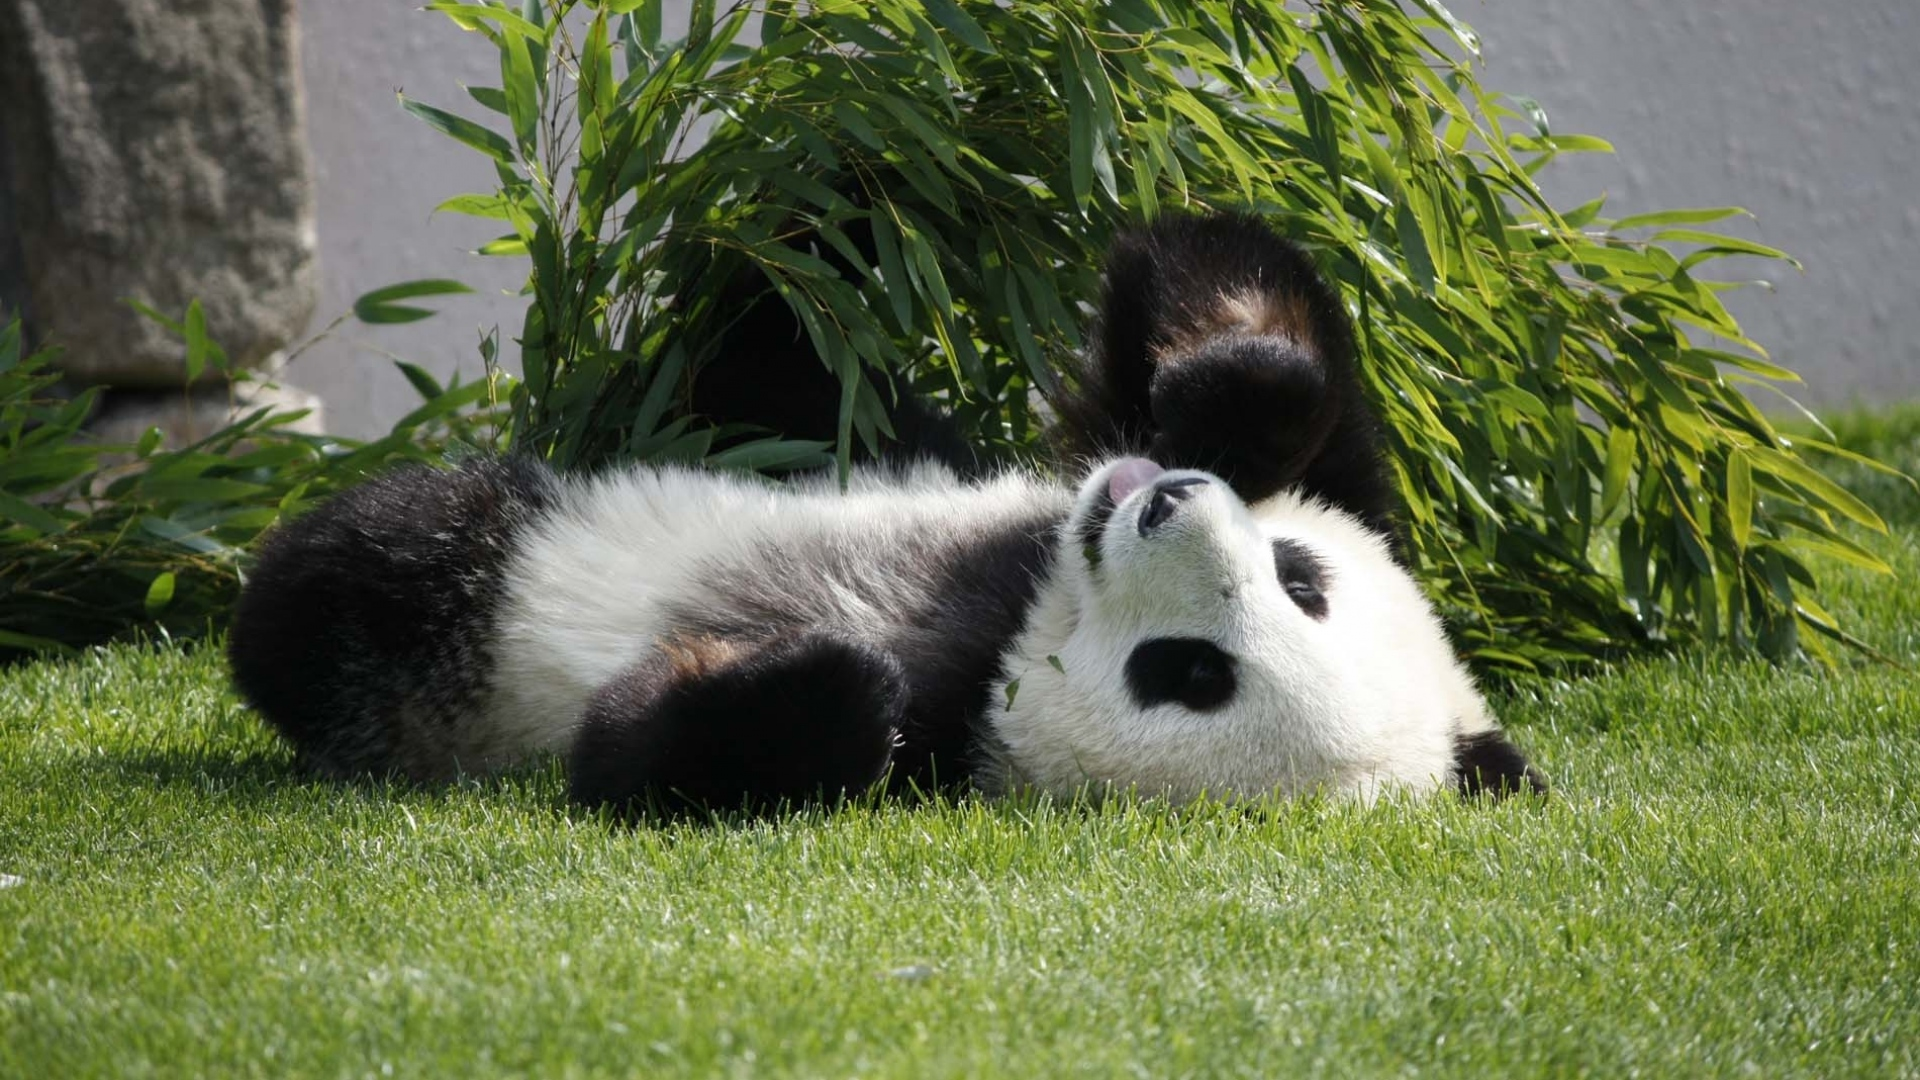 Earnings Disclaimer >> Download Wallpaper 1920x1080 panda, lie, grass Full HD 1080p HD Background